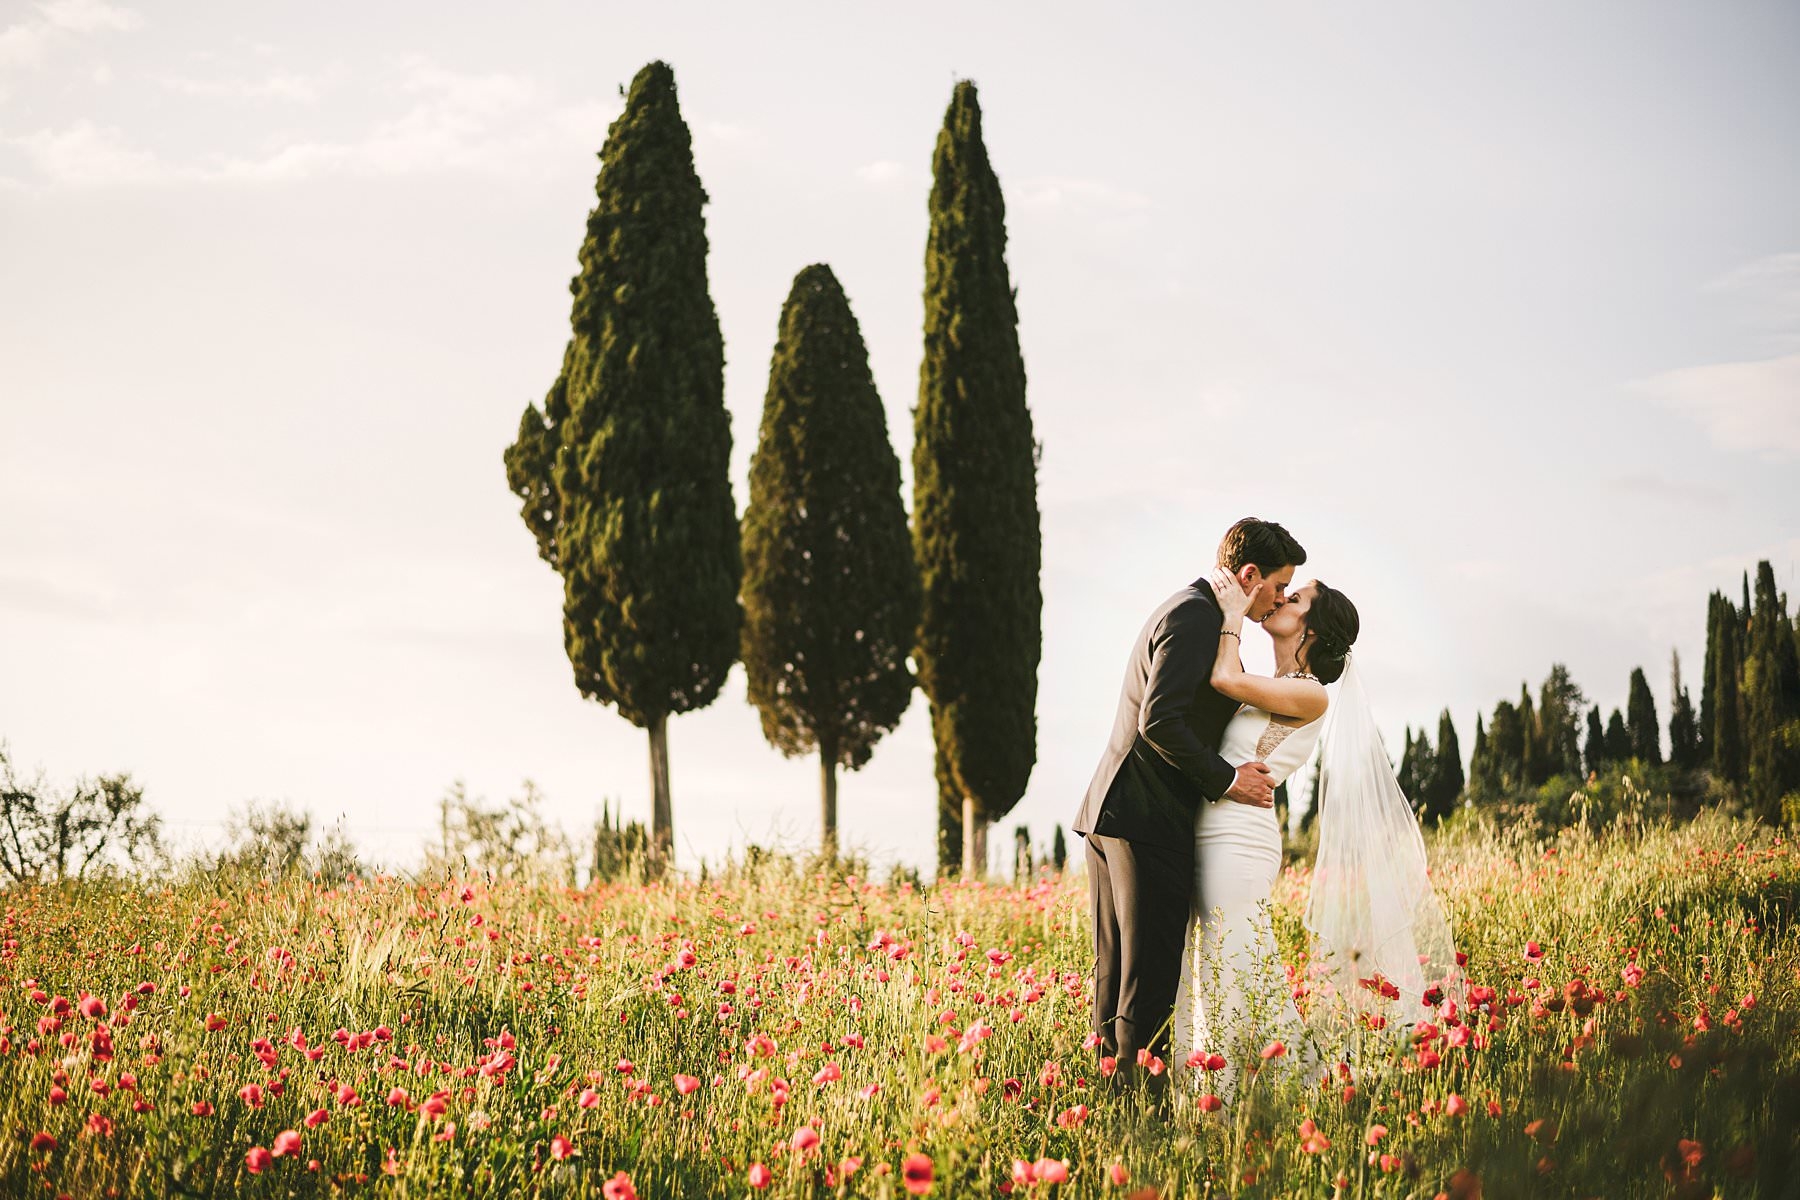 Heartfelt small wedding in the countryside of Tuscany. In the end of bride and groom portrait session, it was finally time for another wish to be granted: Katrina was longing for a countryside photoshoot in a field of poppies. We found the perfect spot among the hills of Valdarno: an immense expanse of bright red poppies on a golden field, with cypresses on the background. There couldn't have been a most romantic setting for those strongly desired photographs, that Katrina and John will treasure forever